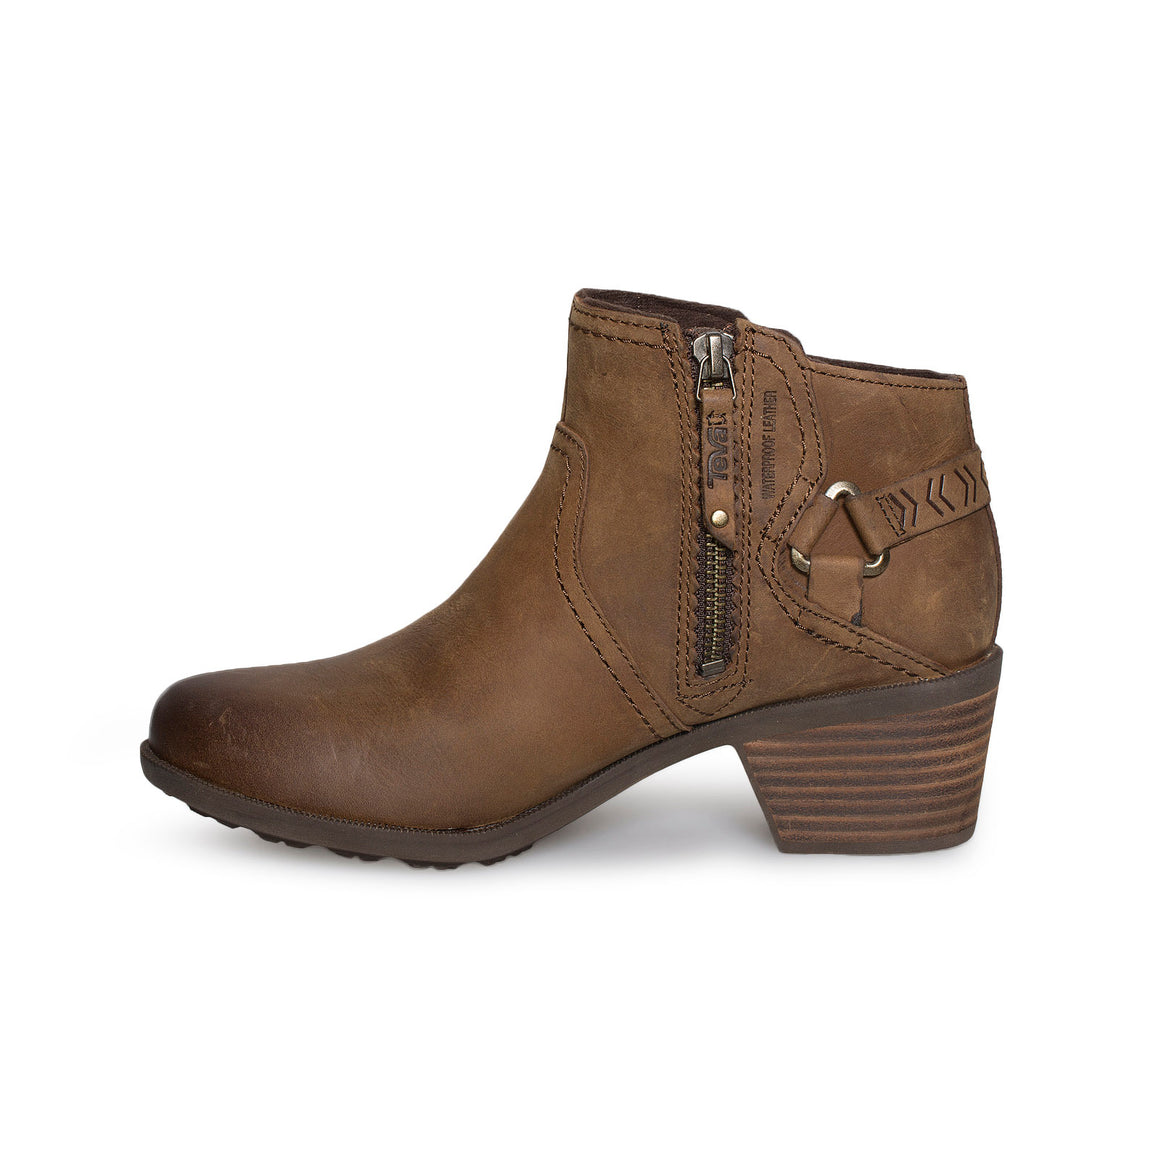 Teva Foxy Brown Boots